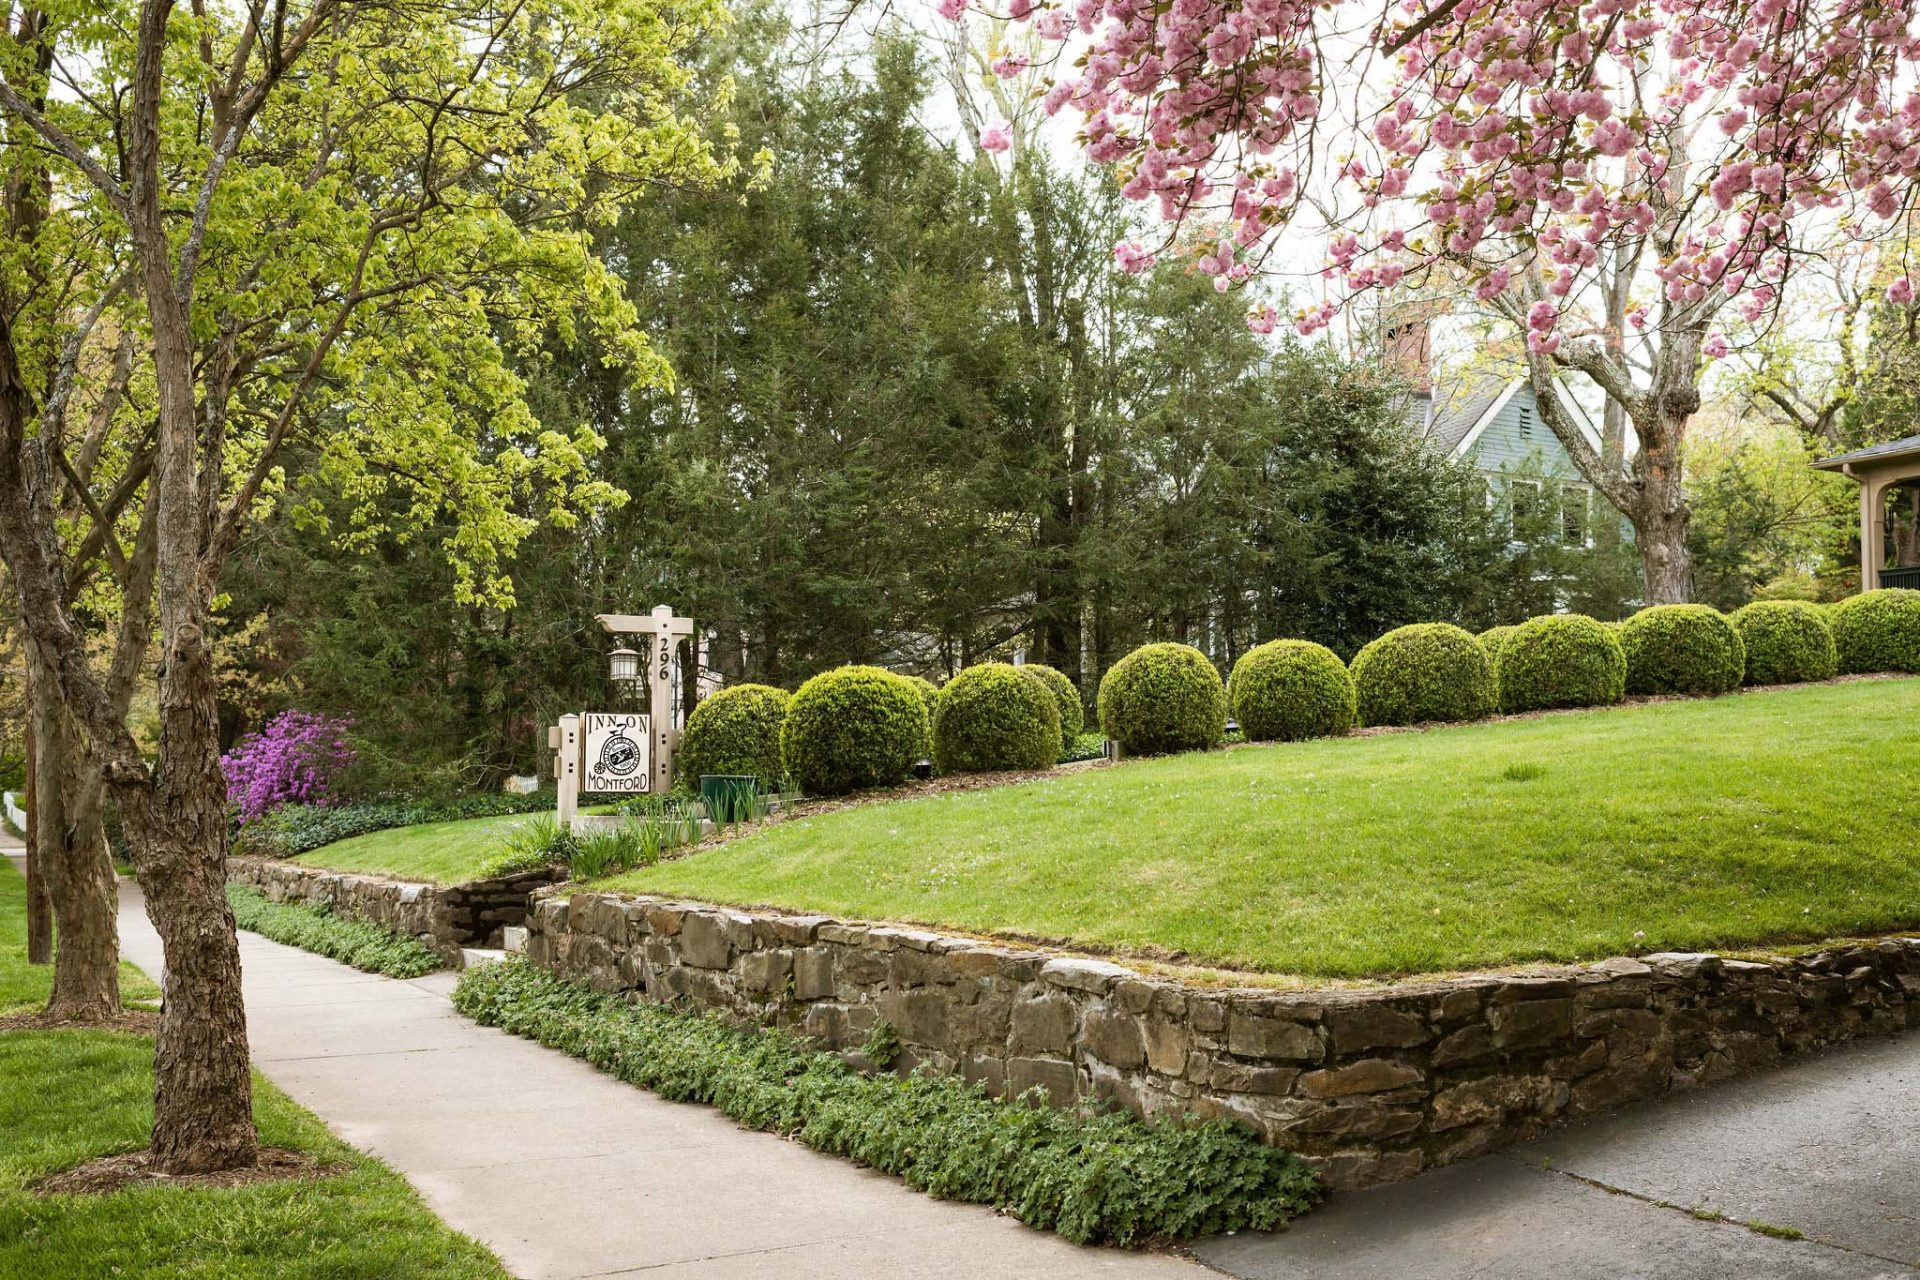 Sidewalk leading to Inn on Montford with a welcoming sign. Elevate front yard with a stone curb, green lawn and round ball bushes.